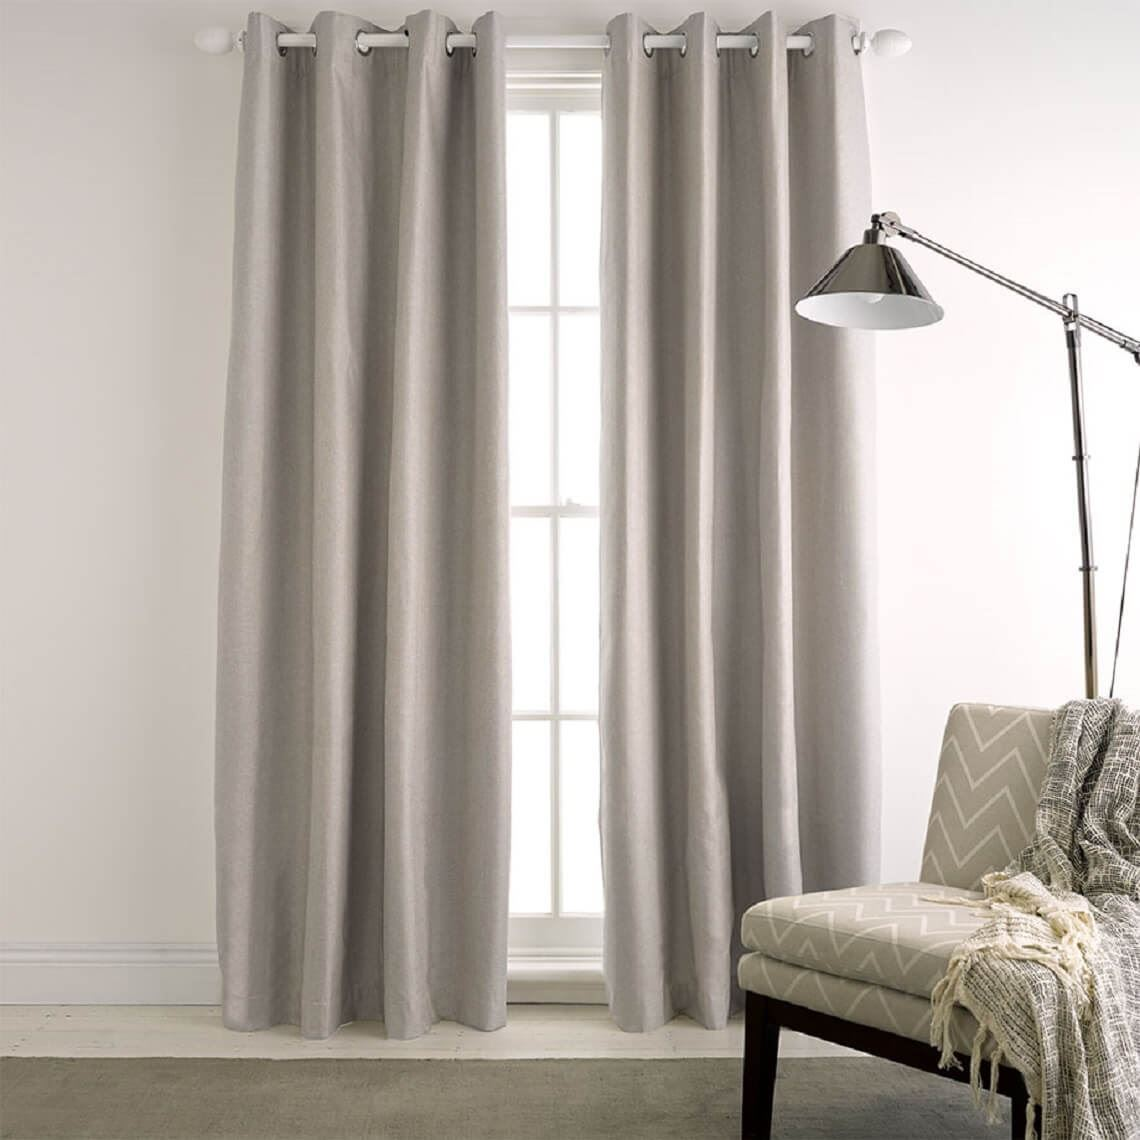 Milton Blockout Eyelet Curtain Size W 180cm x D 0cm x H 250cm in Silver 100% Polyester/Acrylic Flock Coating/Stainless Steel Freedom by Freedom, a Curtains for sale on Style Sourcebook